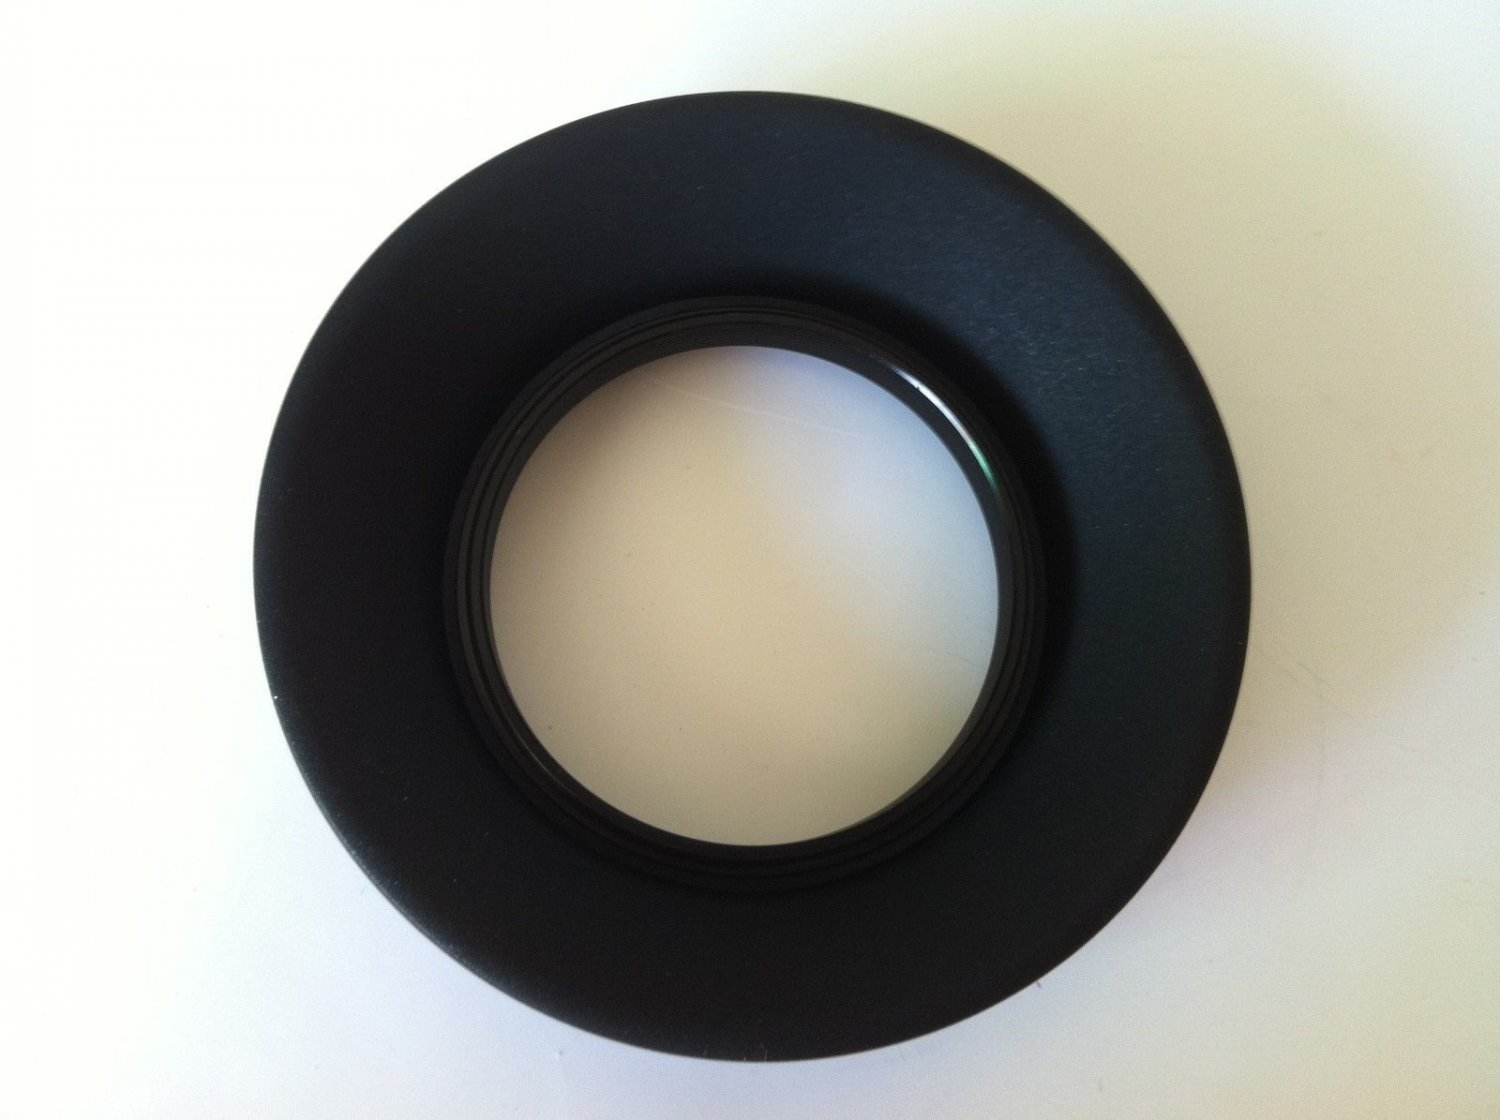 New 58mm 3-in-1 3-Stage Collapsible Rubber Lens Hood